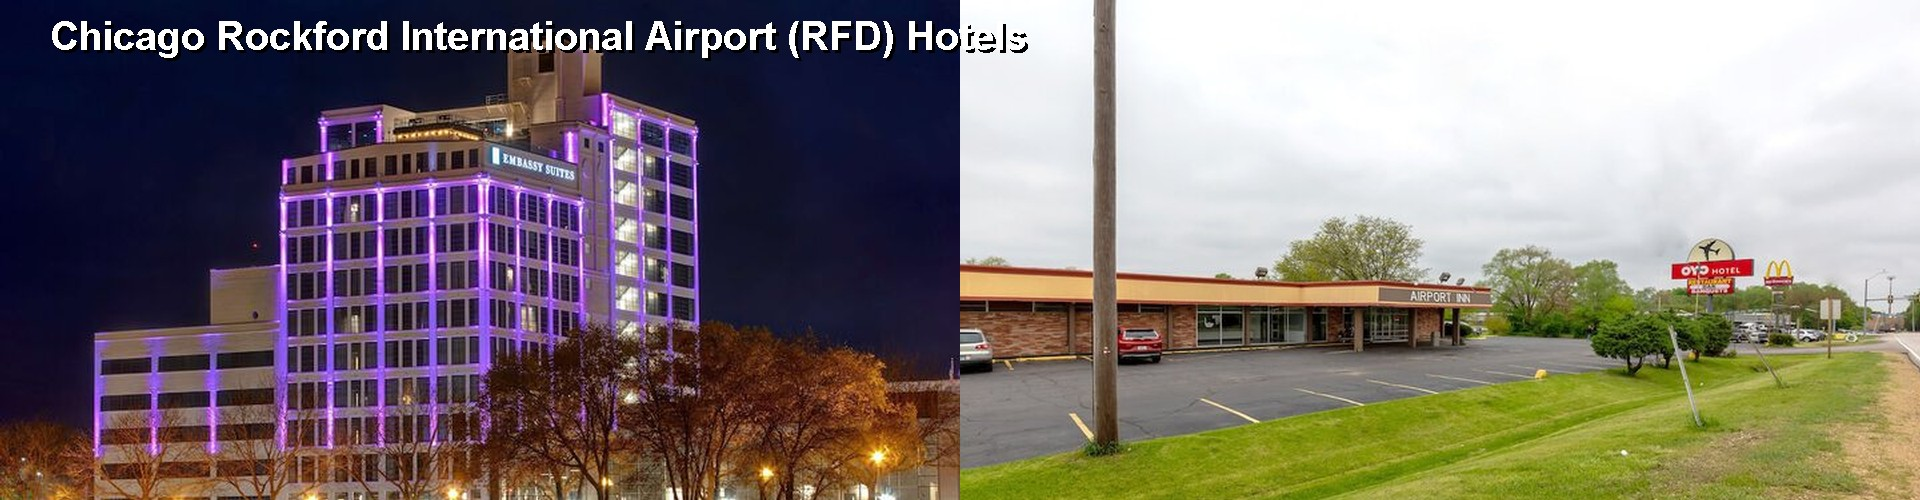 5 Best Hotels near Chicago Rockford International Airport (RFD)